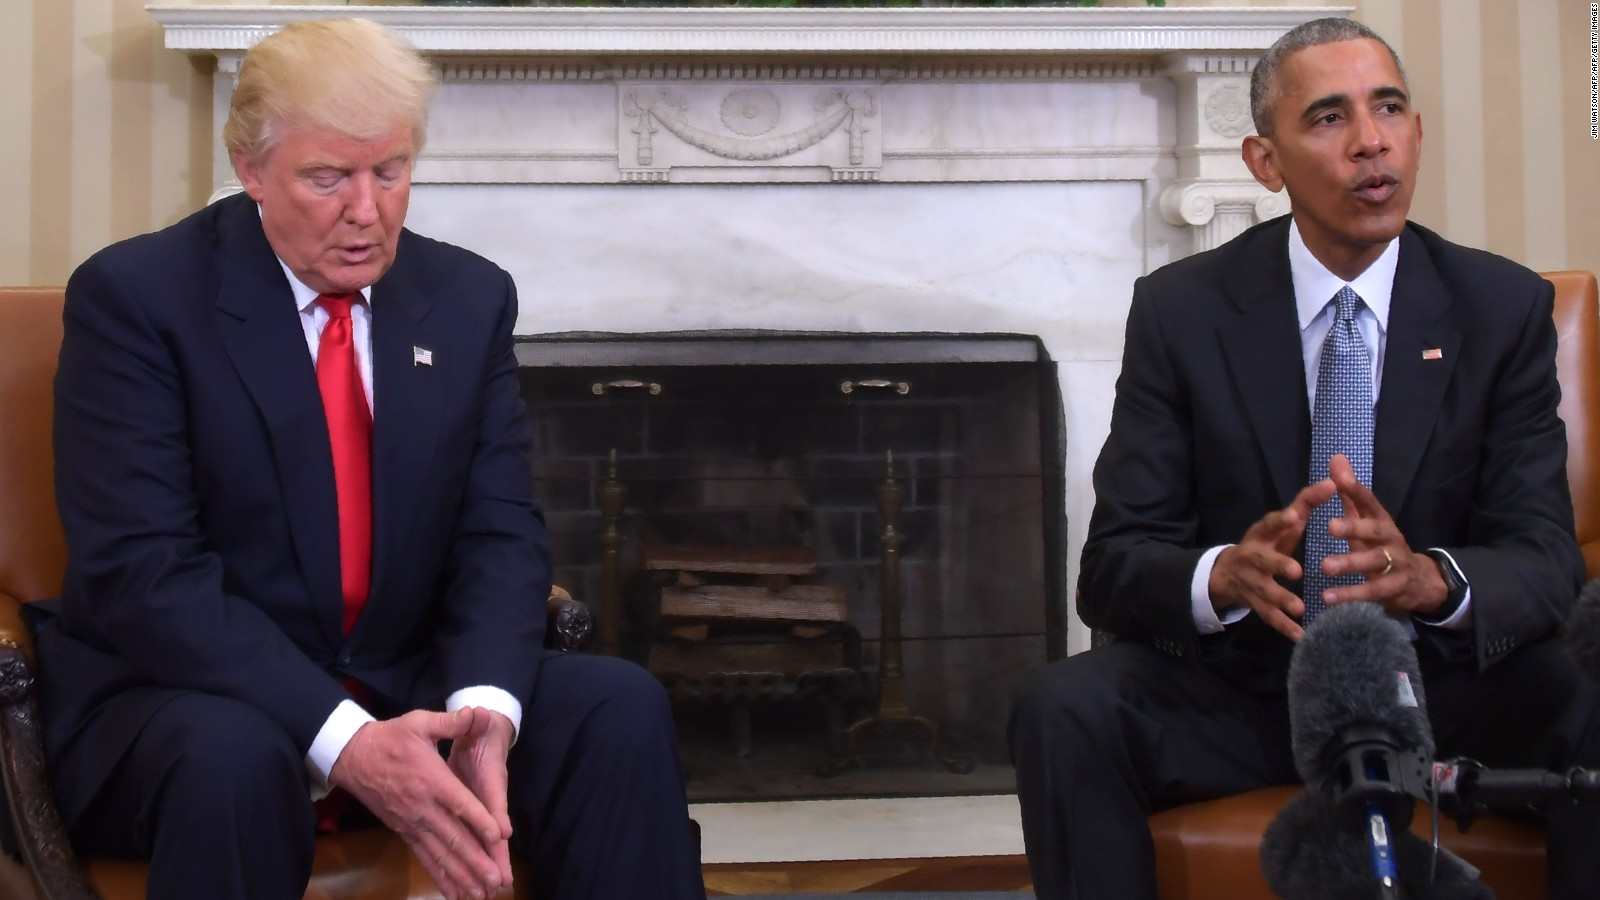 Obama And Cabinet Donald Trump Seeks President Obama Advice On Appointments